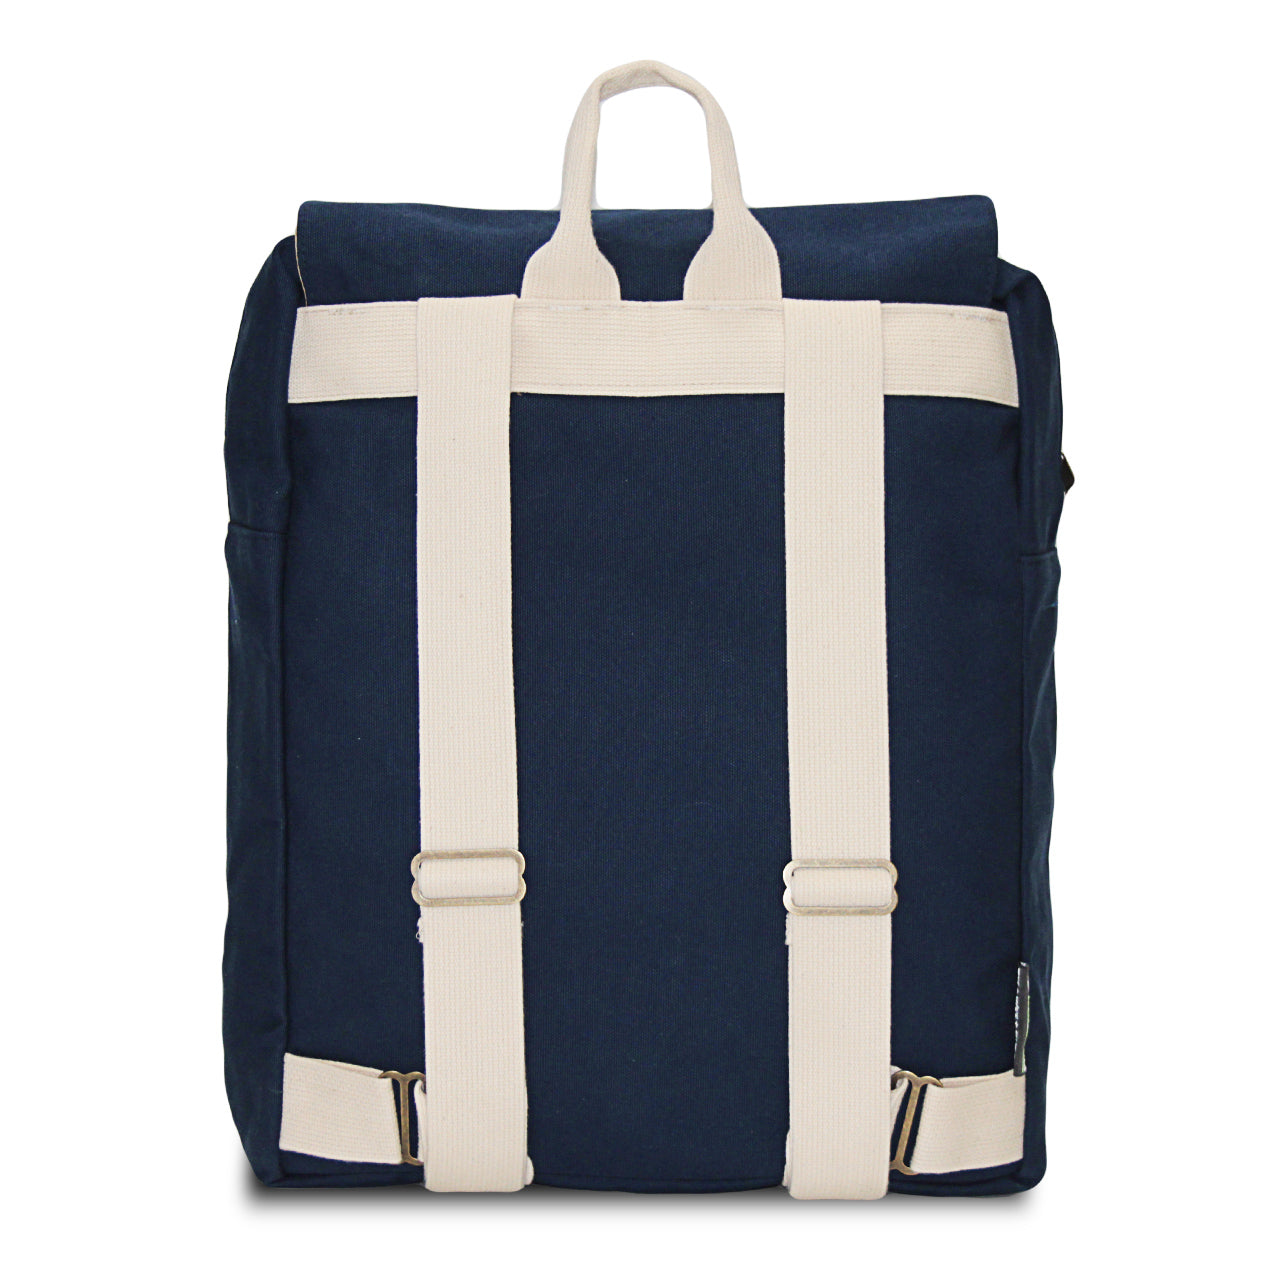 Americana Collection Mitscoots Outfitters Bluetech Waterproff Bag Navy Traveler Backpack